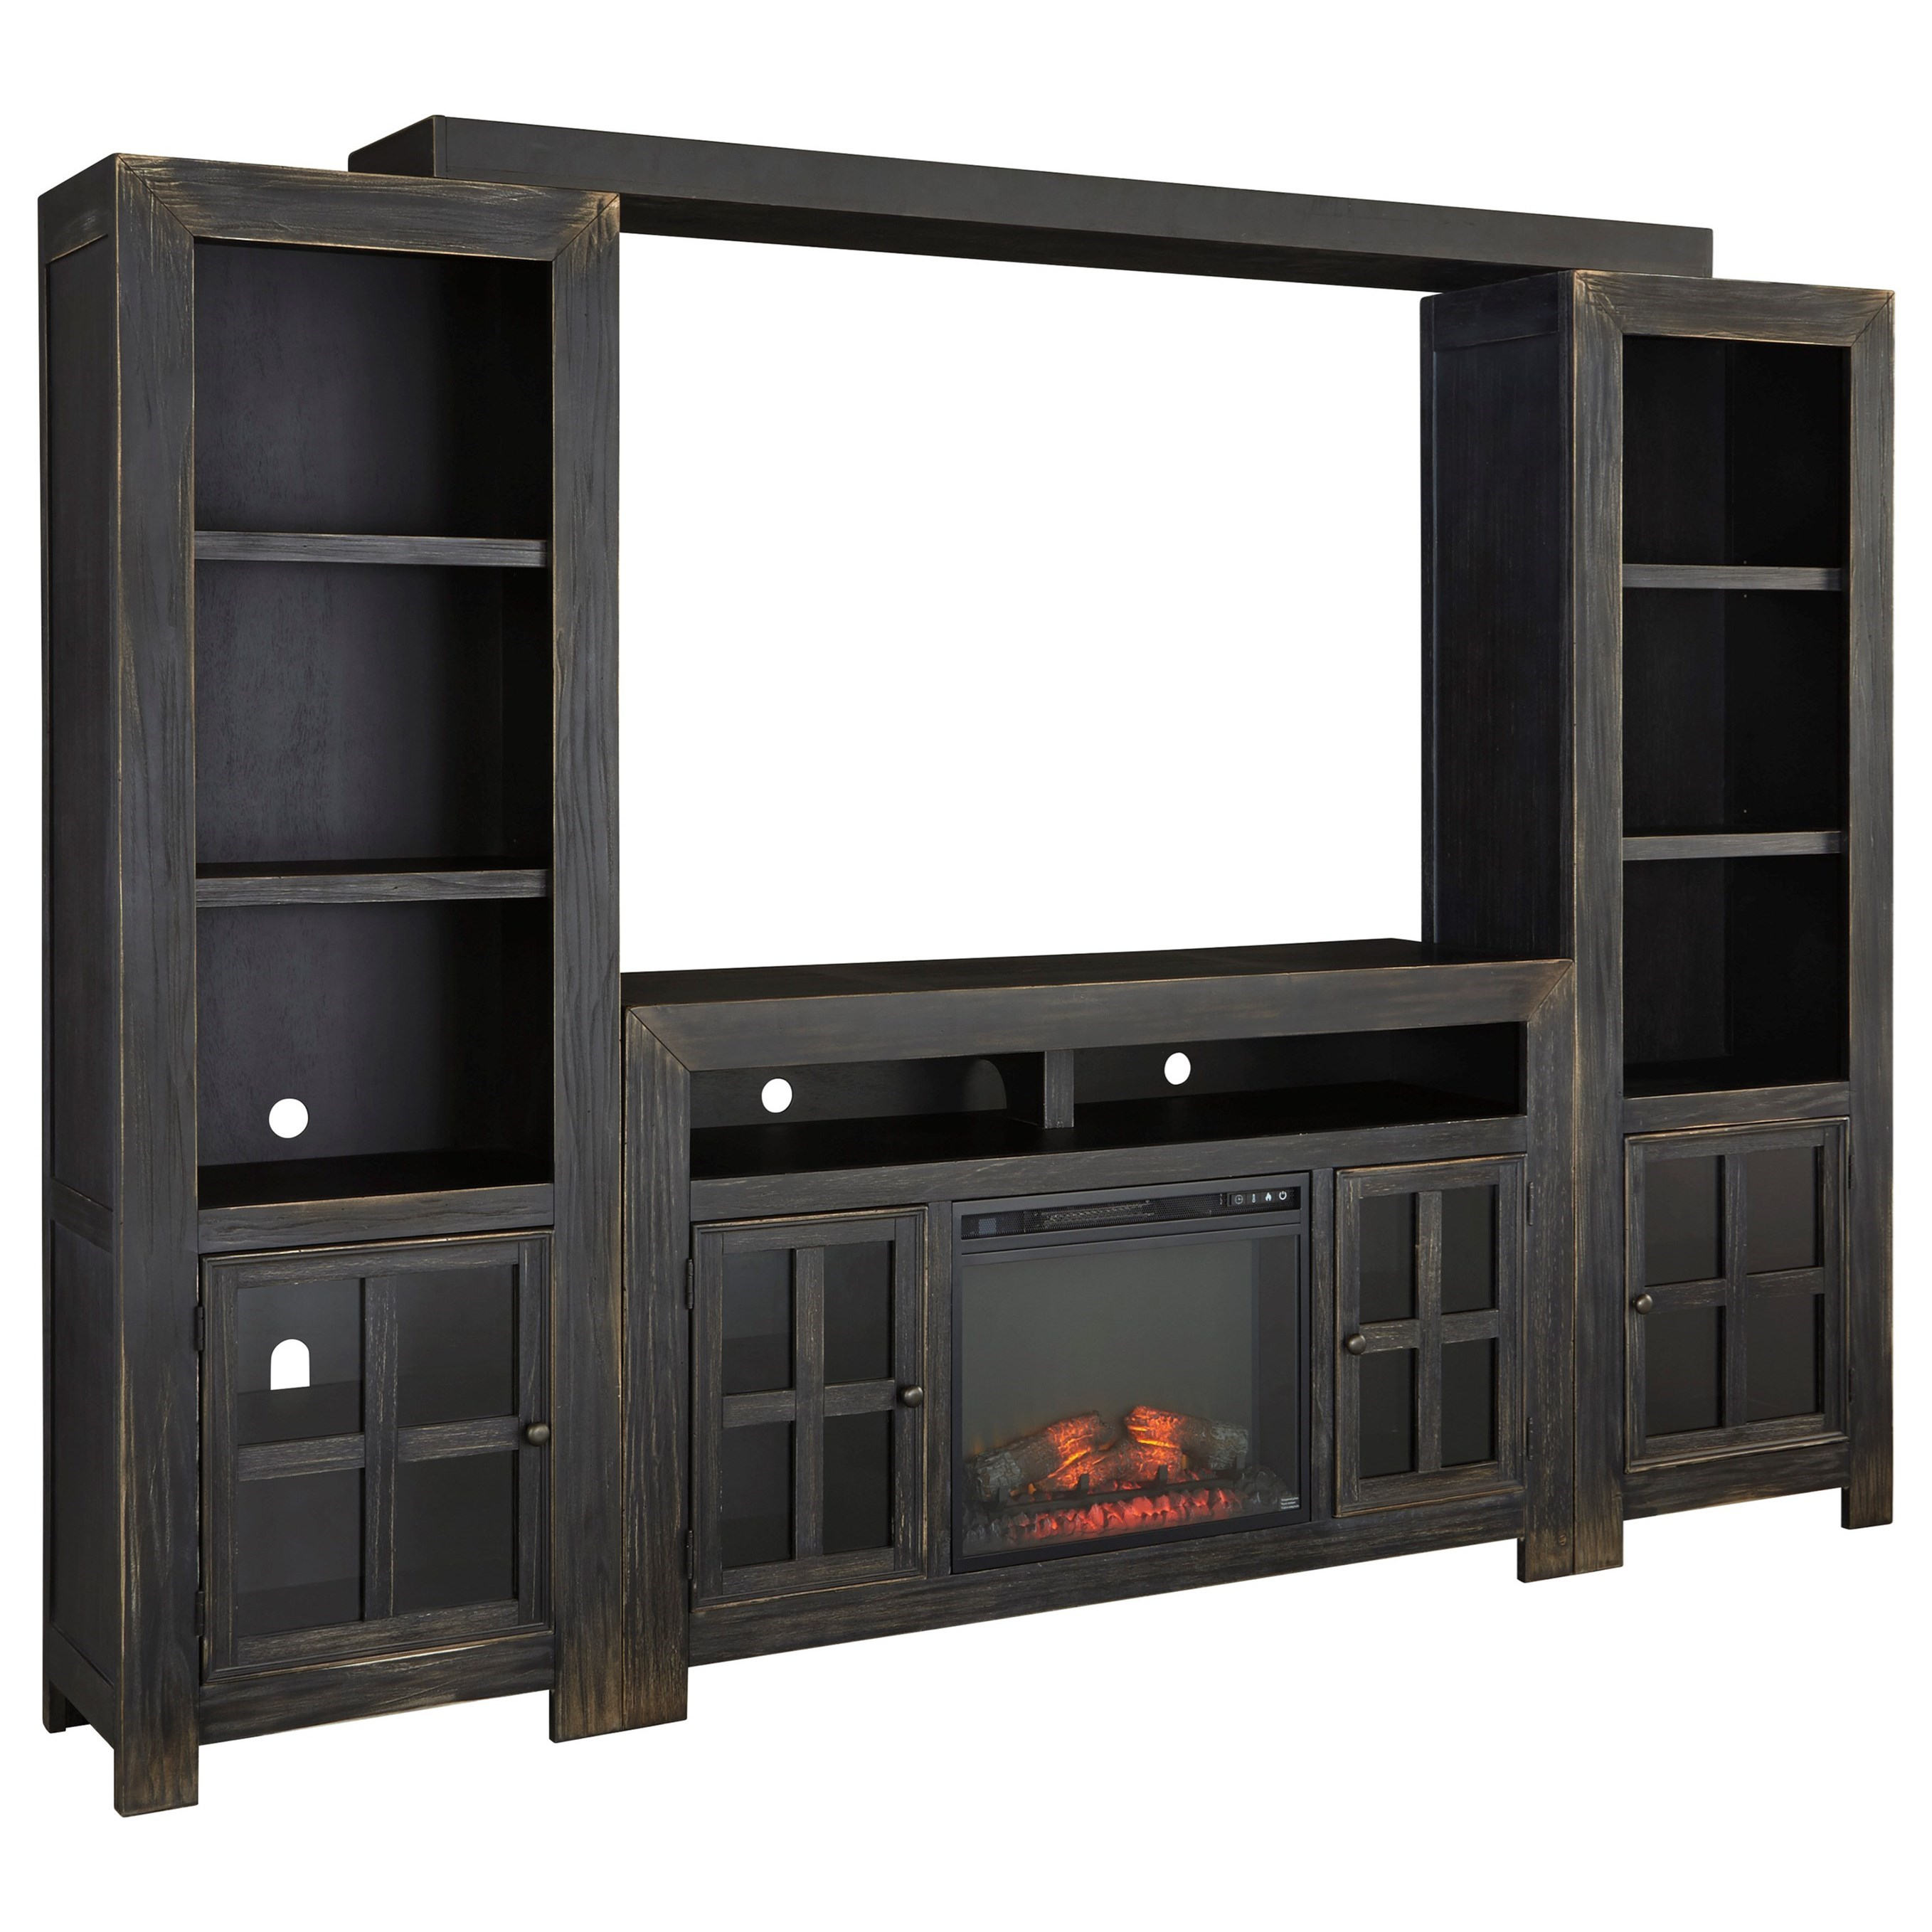 Gavelston TV Stand with Fireplace, Piers & Bridge by Ashley (Signature Design) at Johnny Janosik